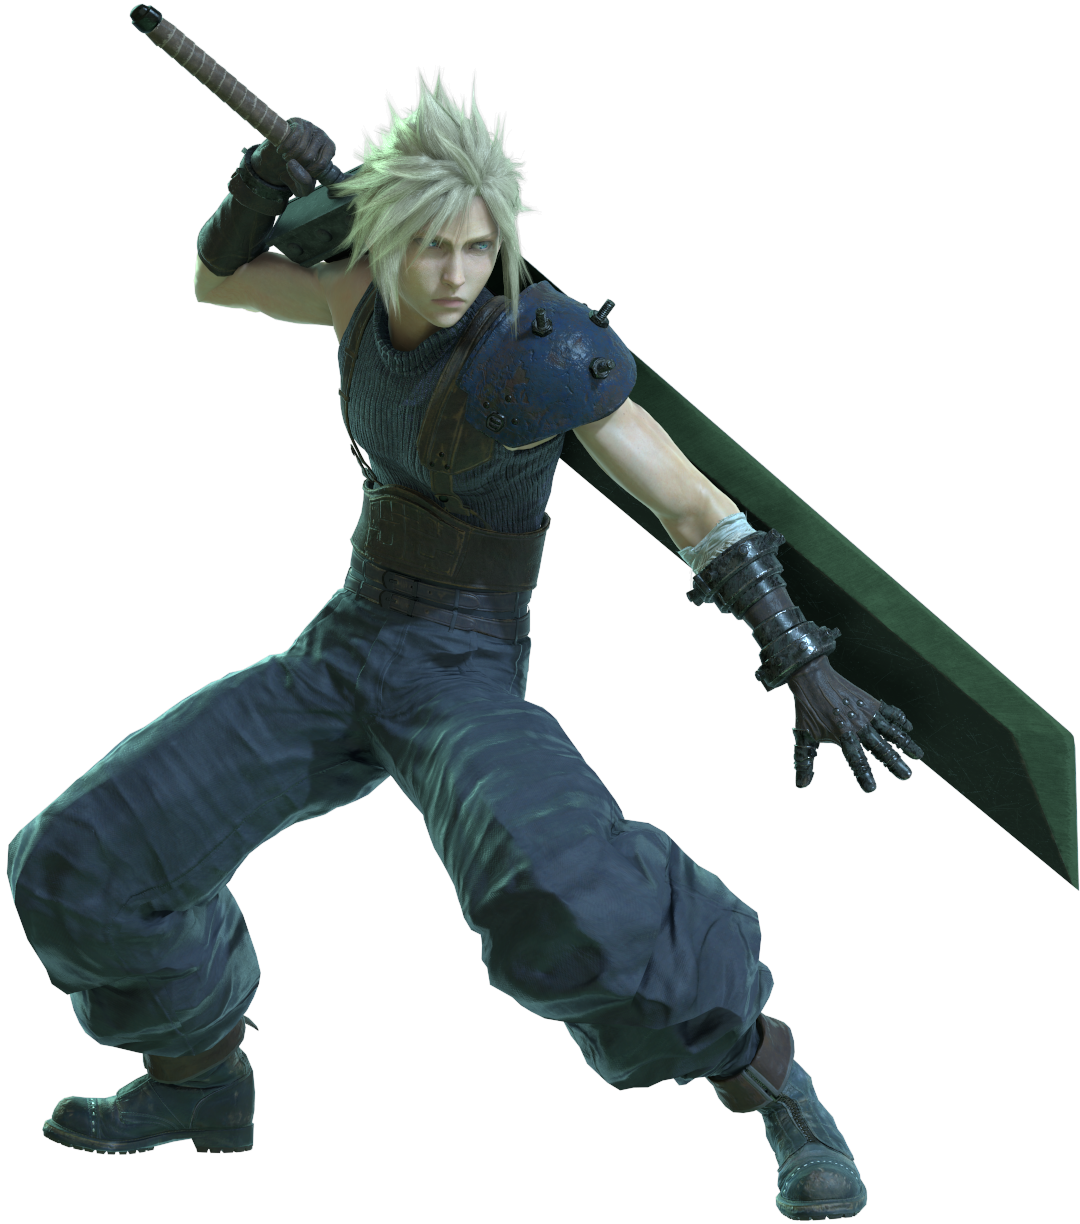 Cloud By Yare Yare Dong On Deviantart Final Fantasy Vii Cloud Final Fantasy Collection Final Fantasy Art